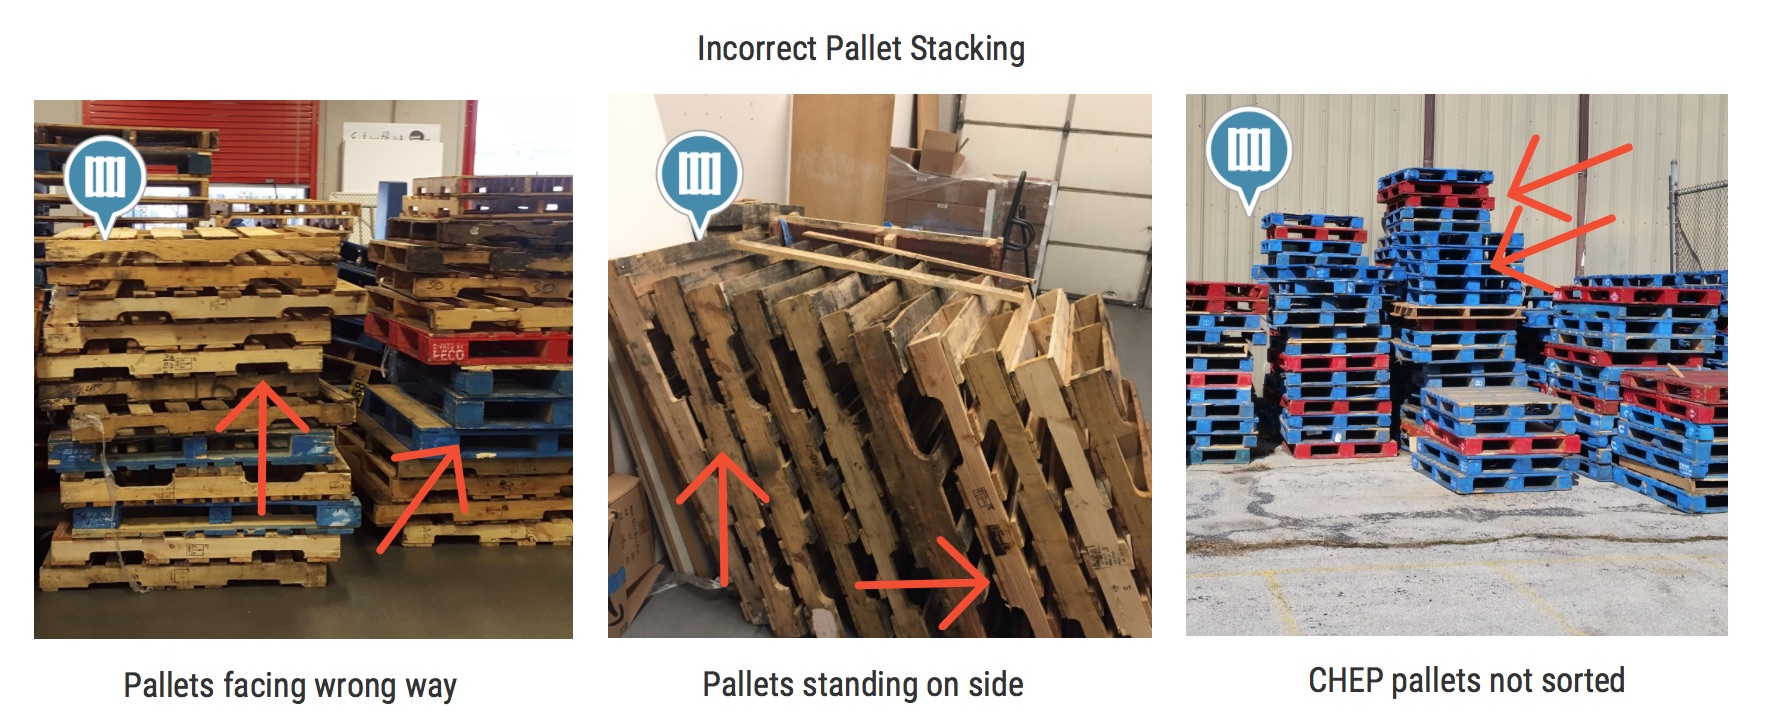 Incorrect Pallet Stacking